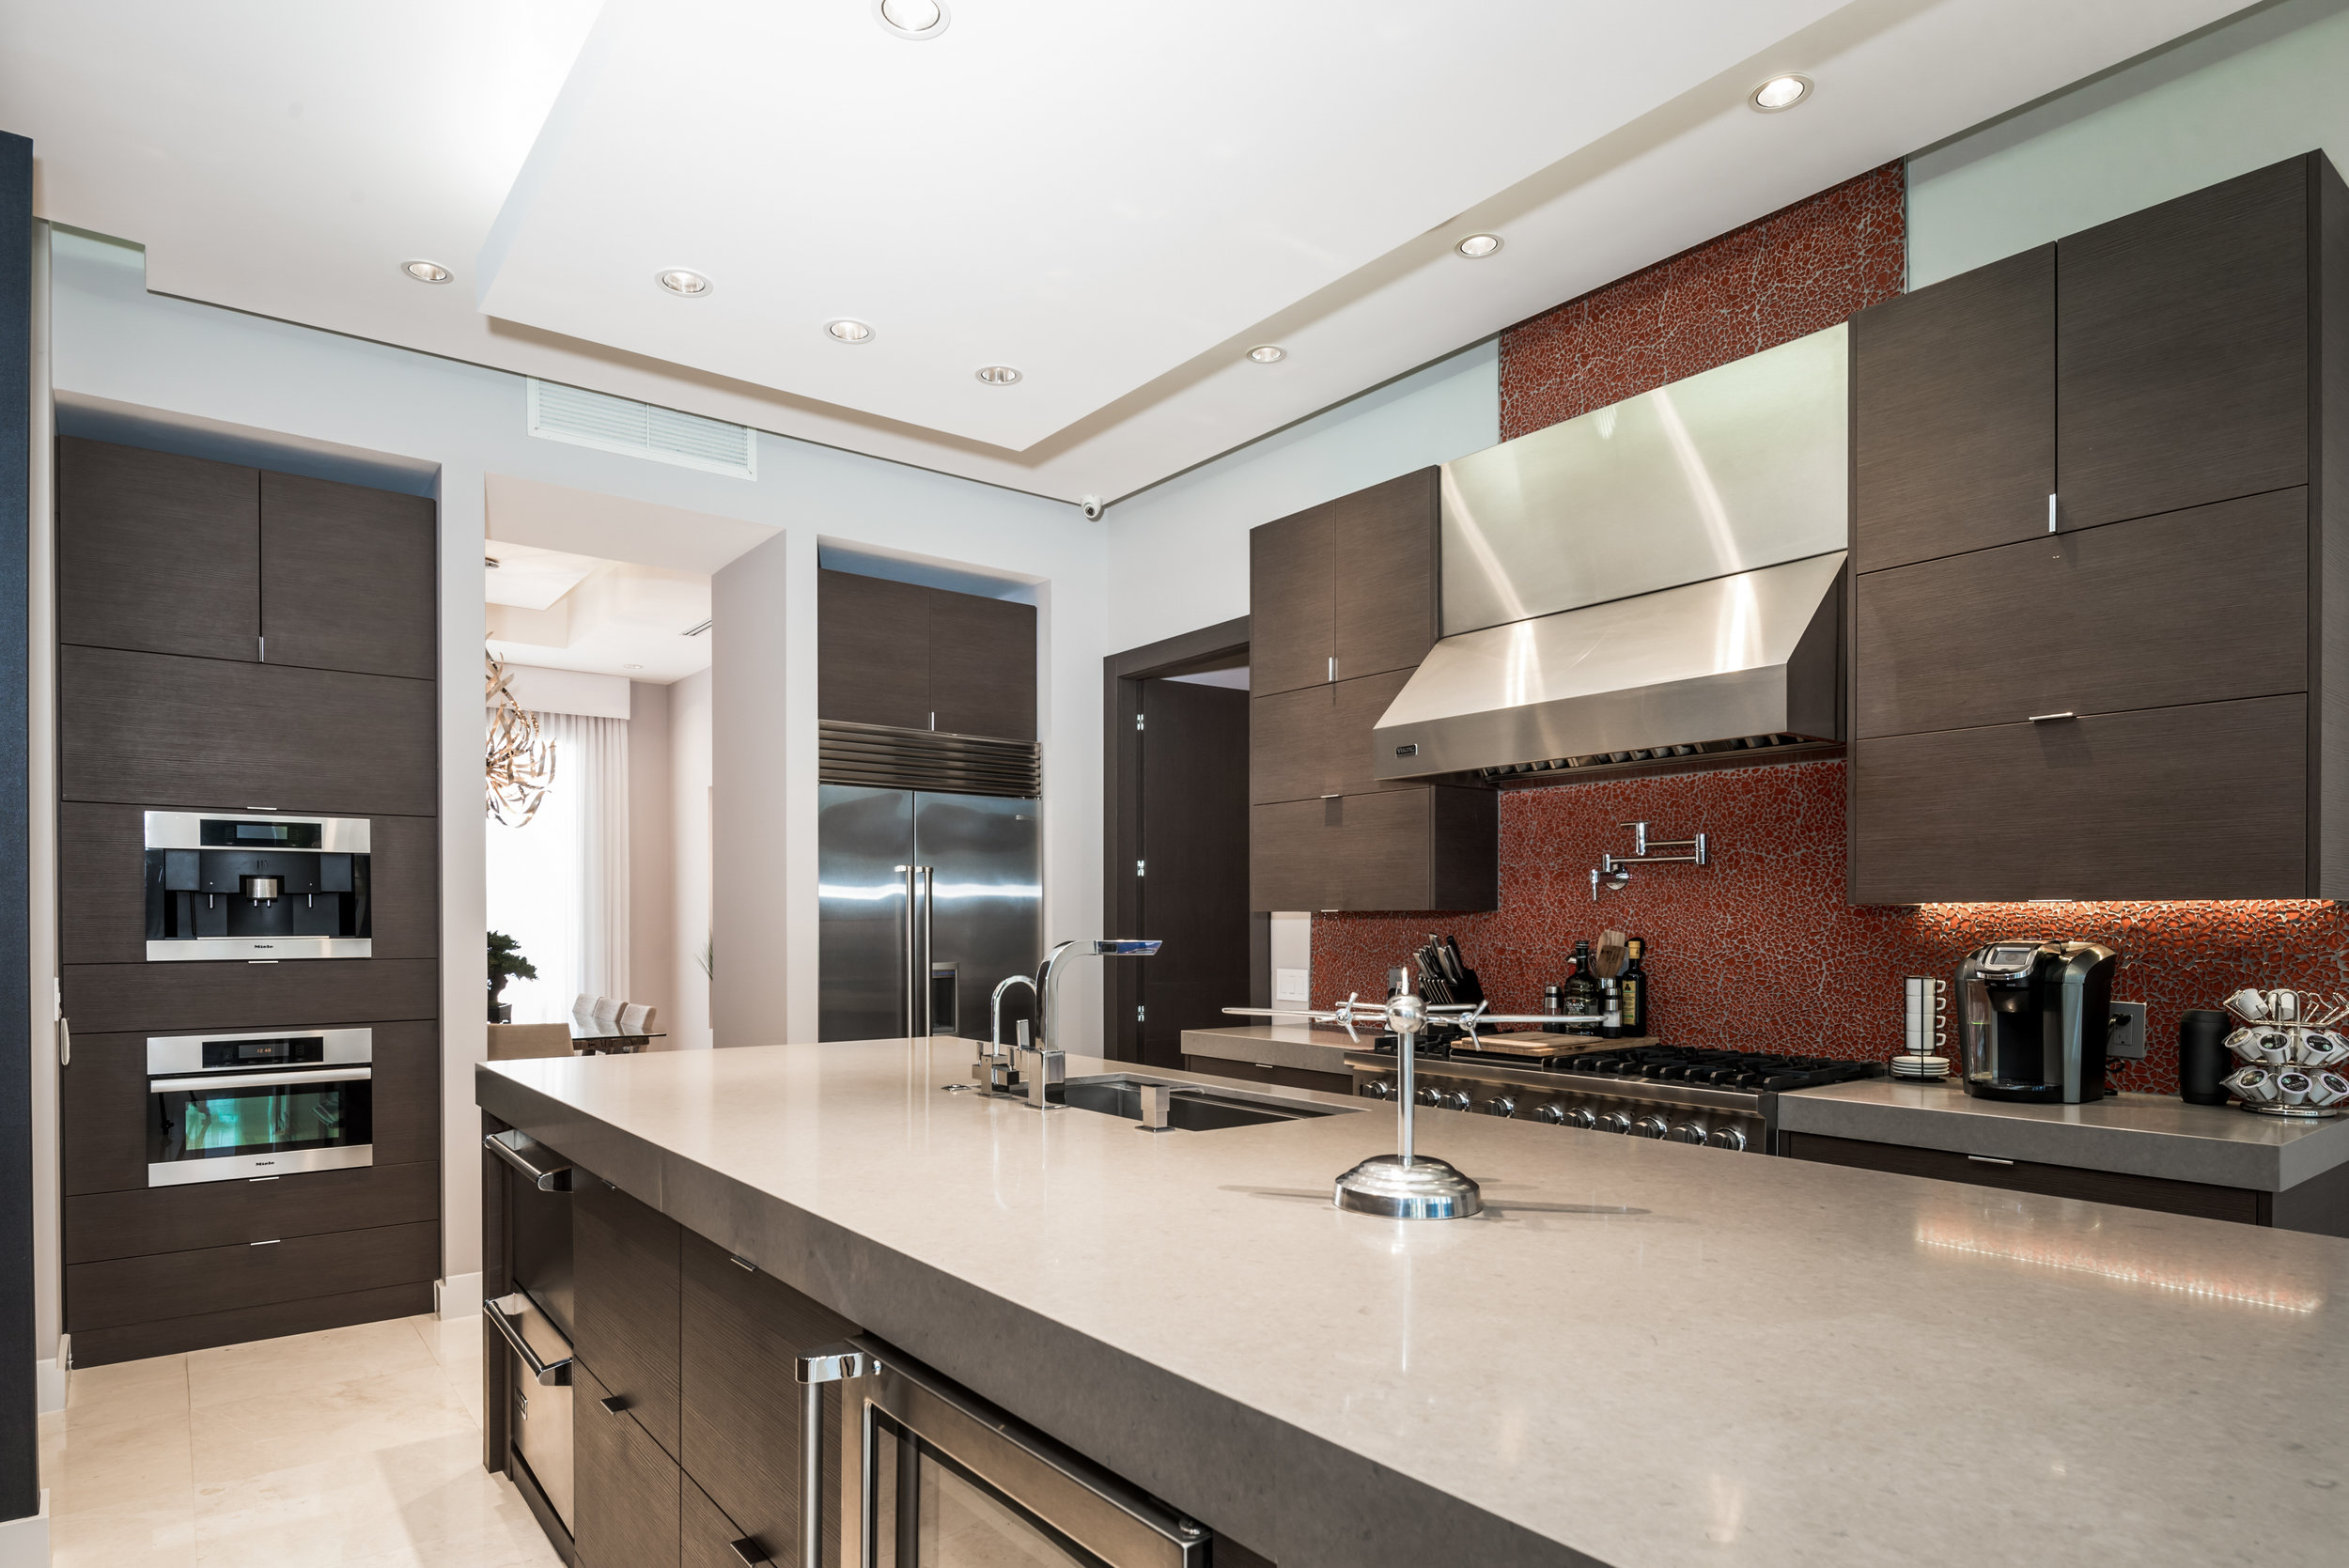 Beautifully Appointed Kitchen.jpg